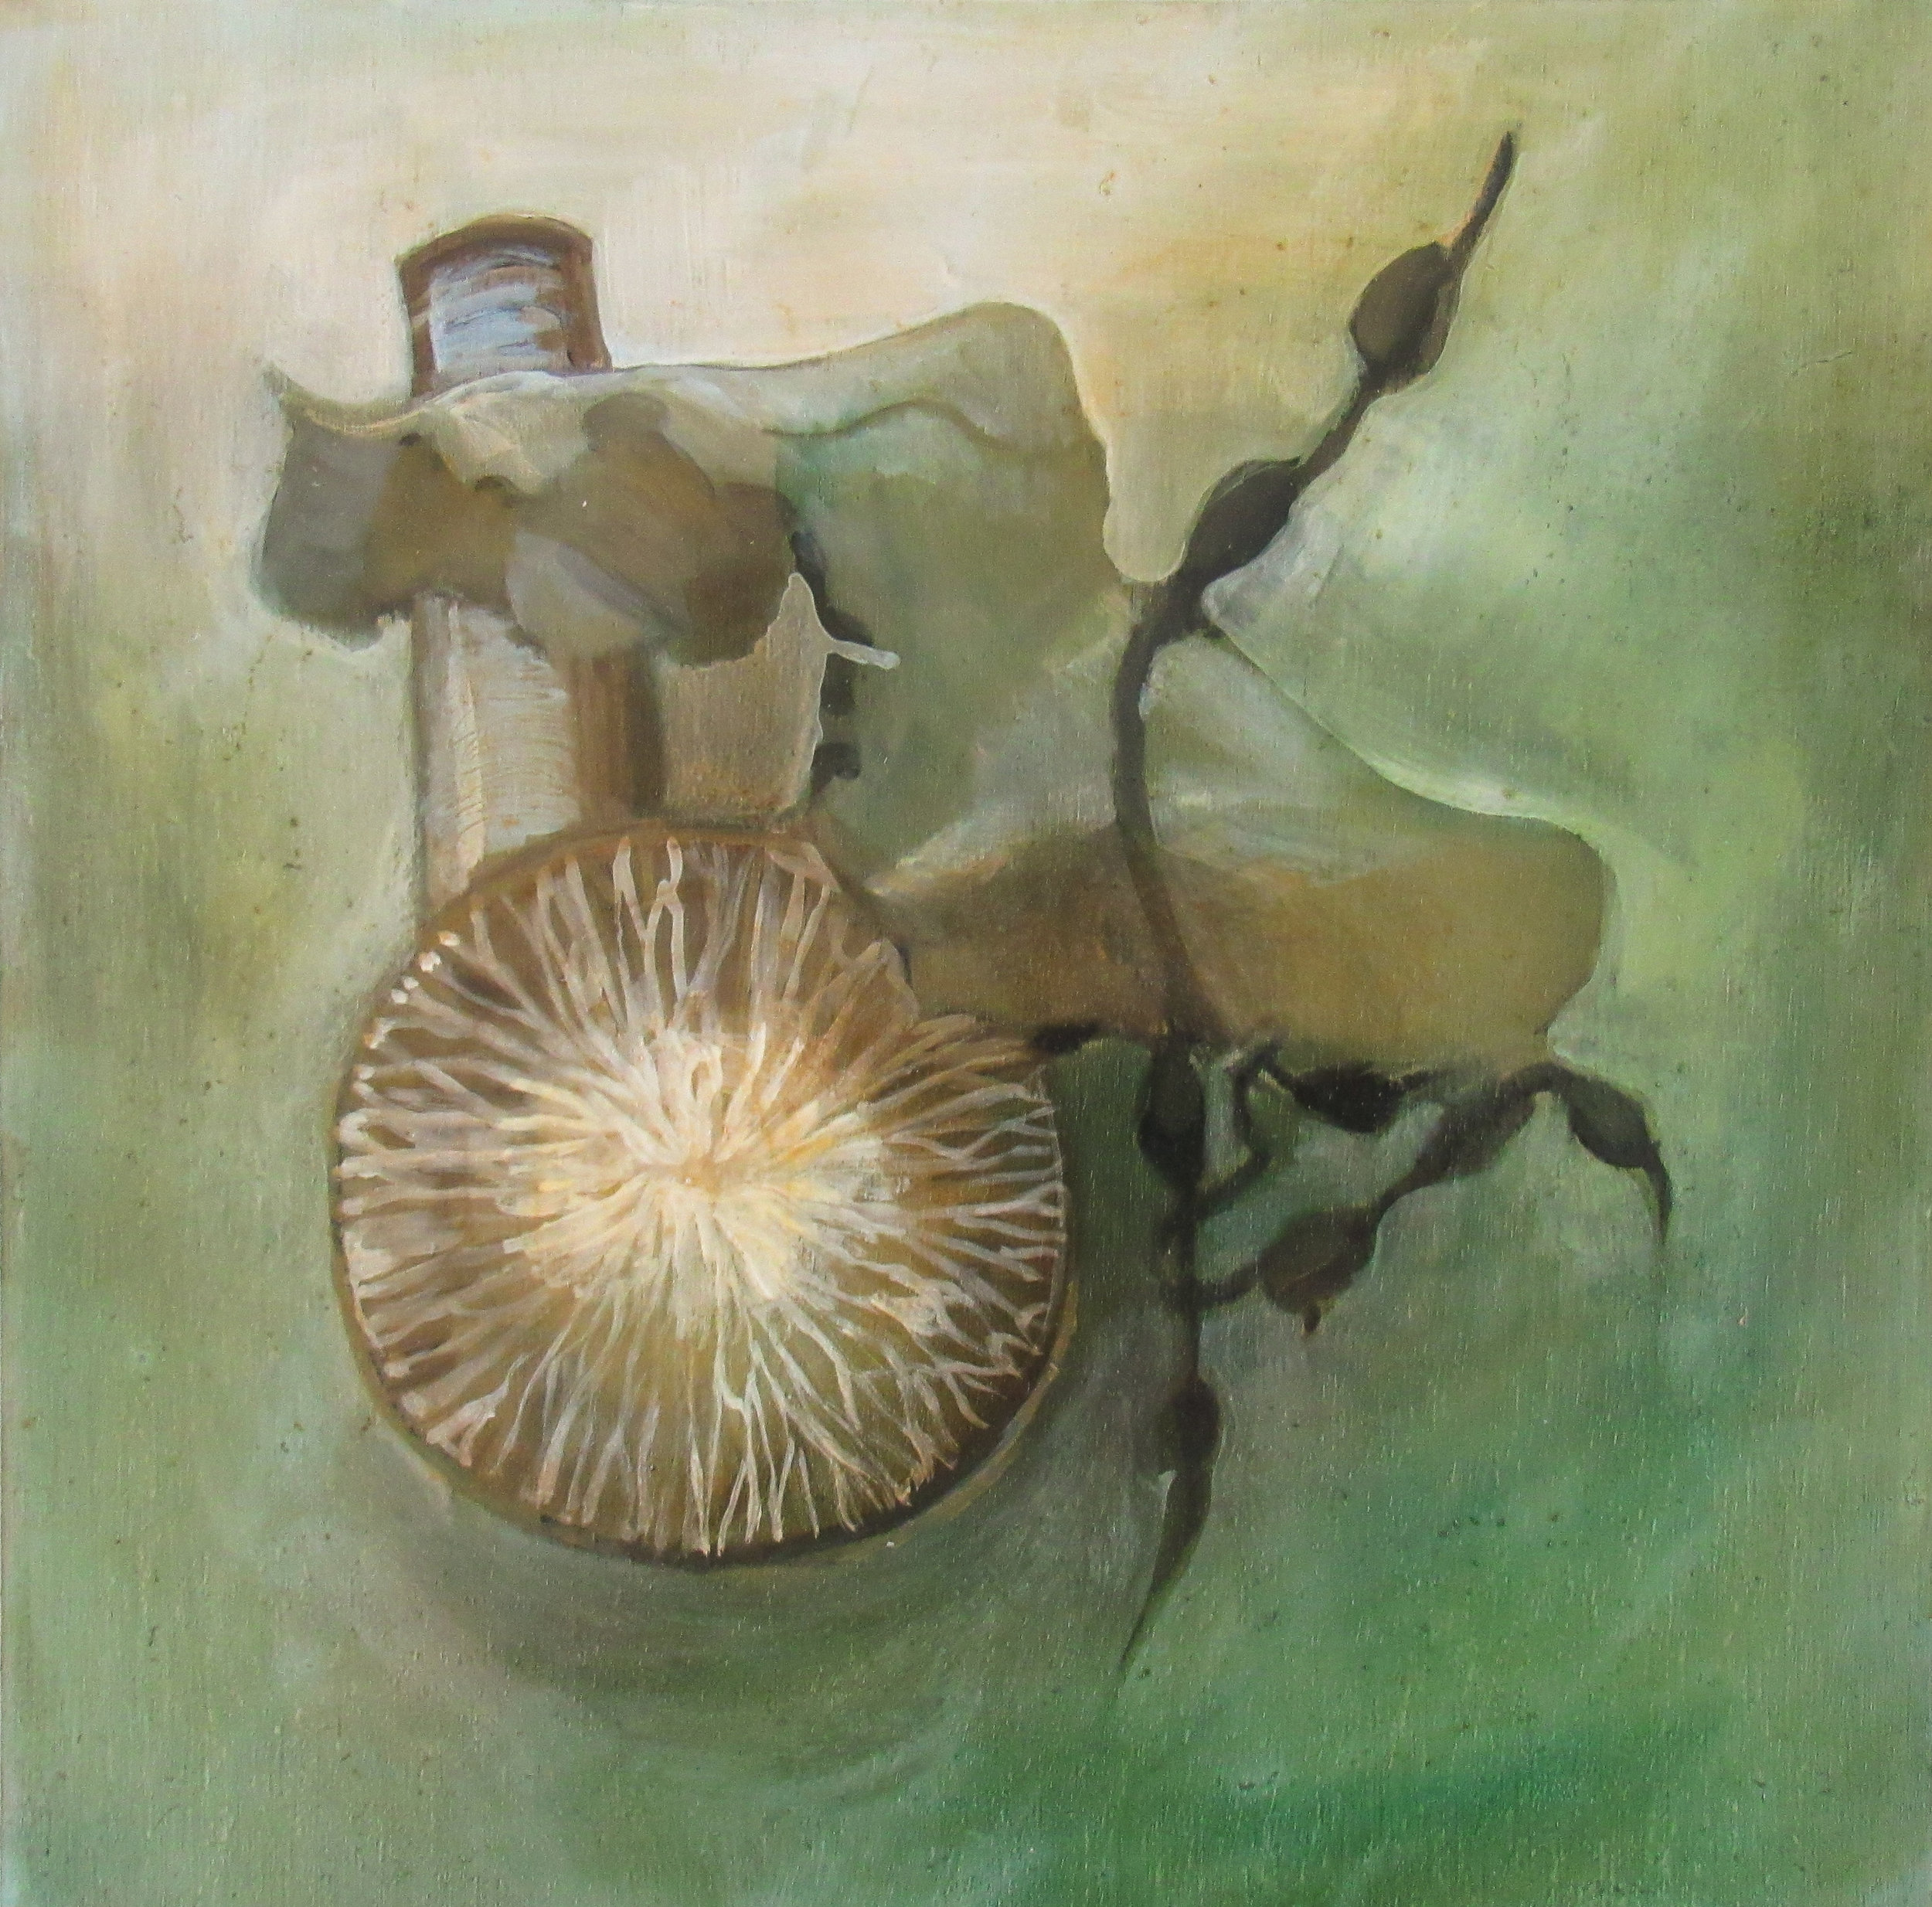 """Whale Invertebral Disc and Sea Weed/ 10 x 10"""" / oil on birchwood panel"""